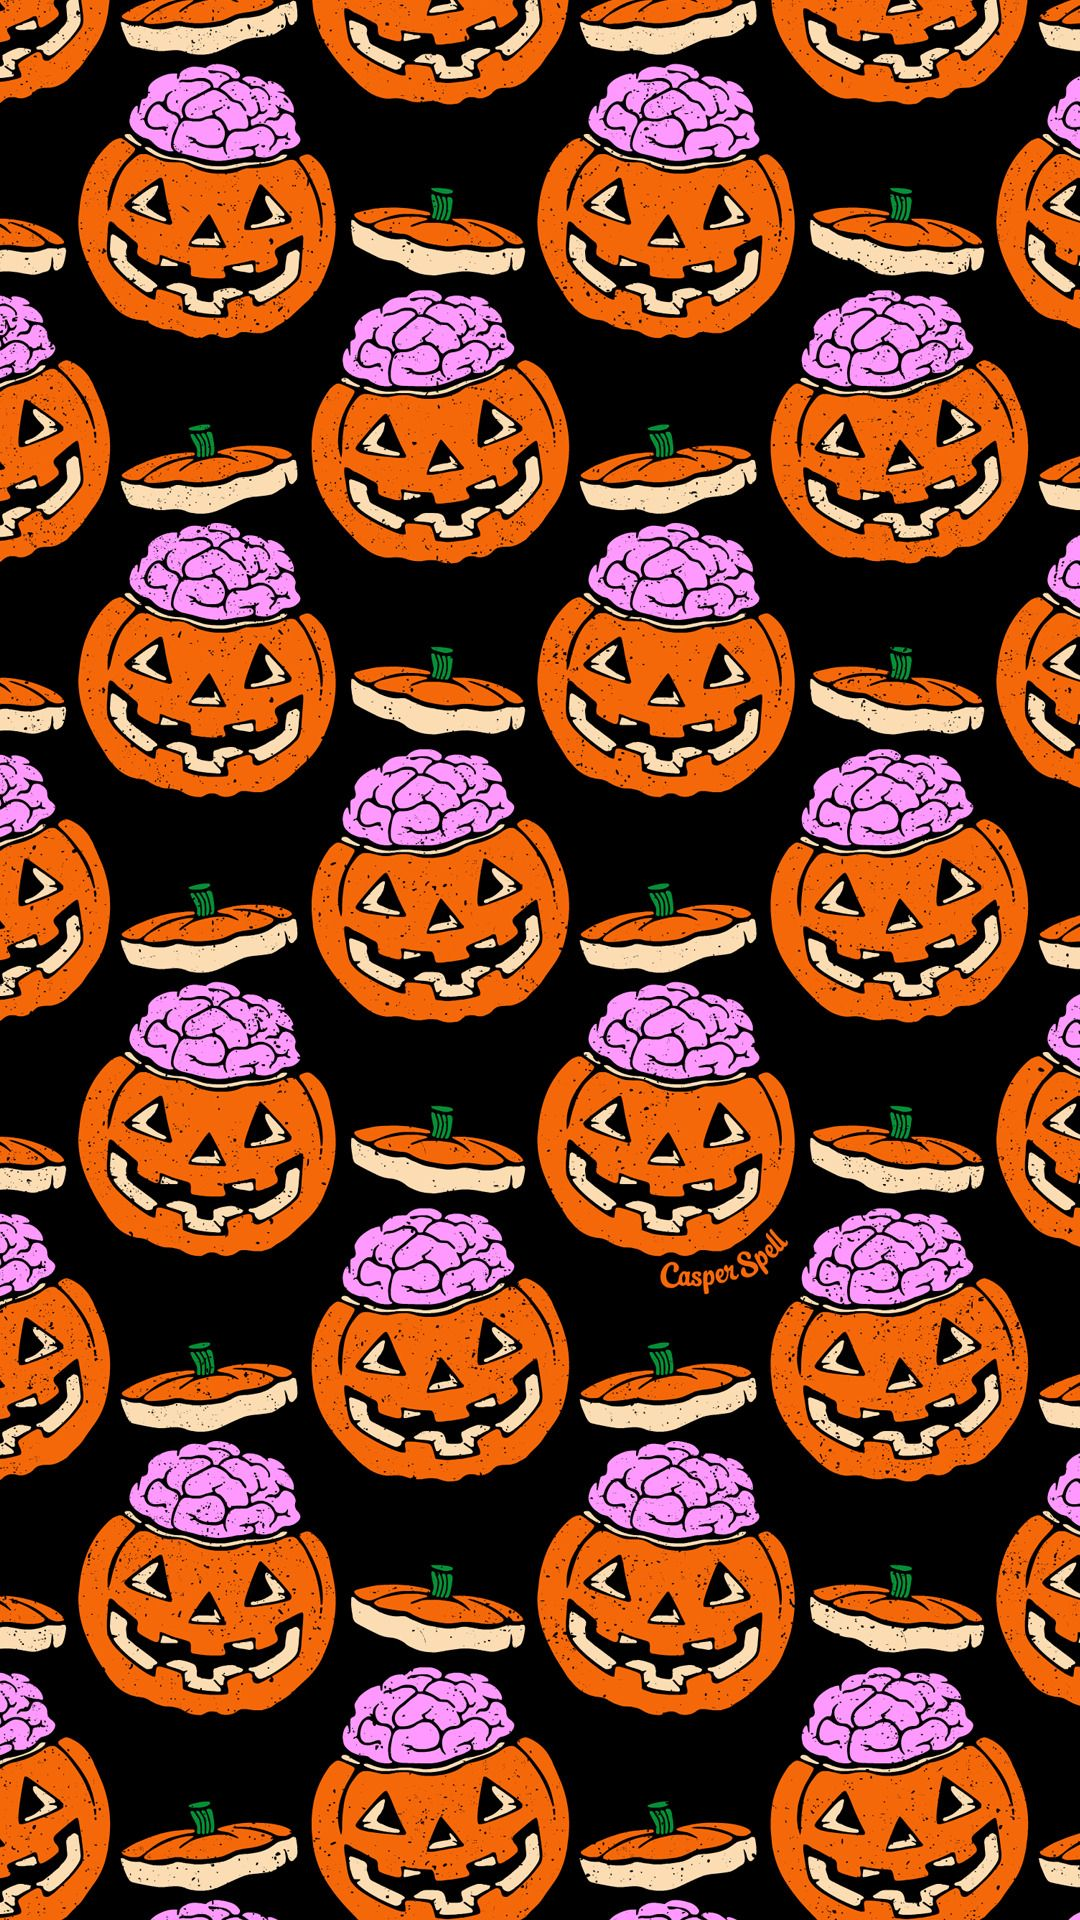 Halloween Wallpaper Halloweenwallpapper Fondos De Halloween Fondo De Pantalla Halloween Fondo Halloween